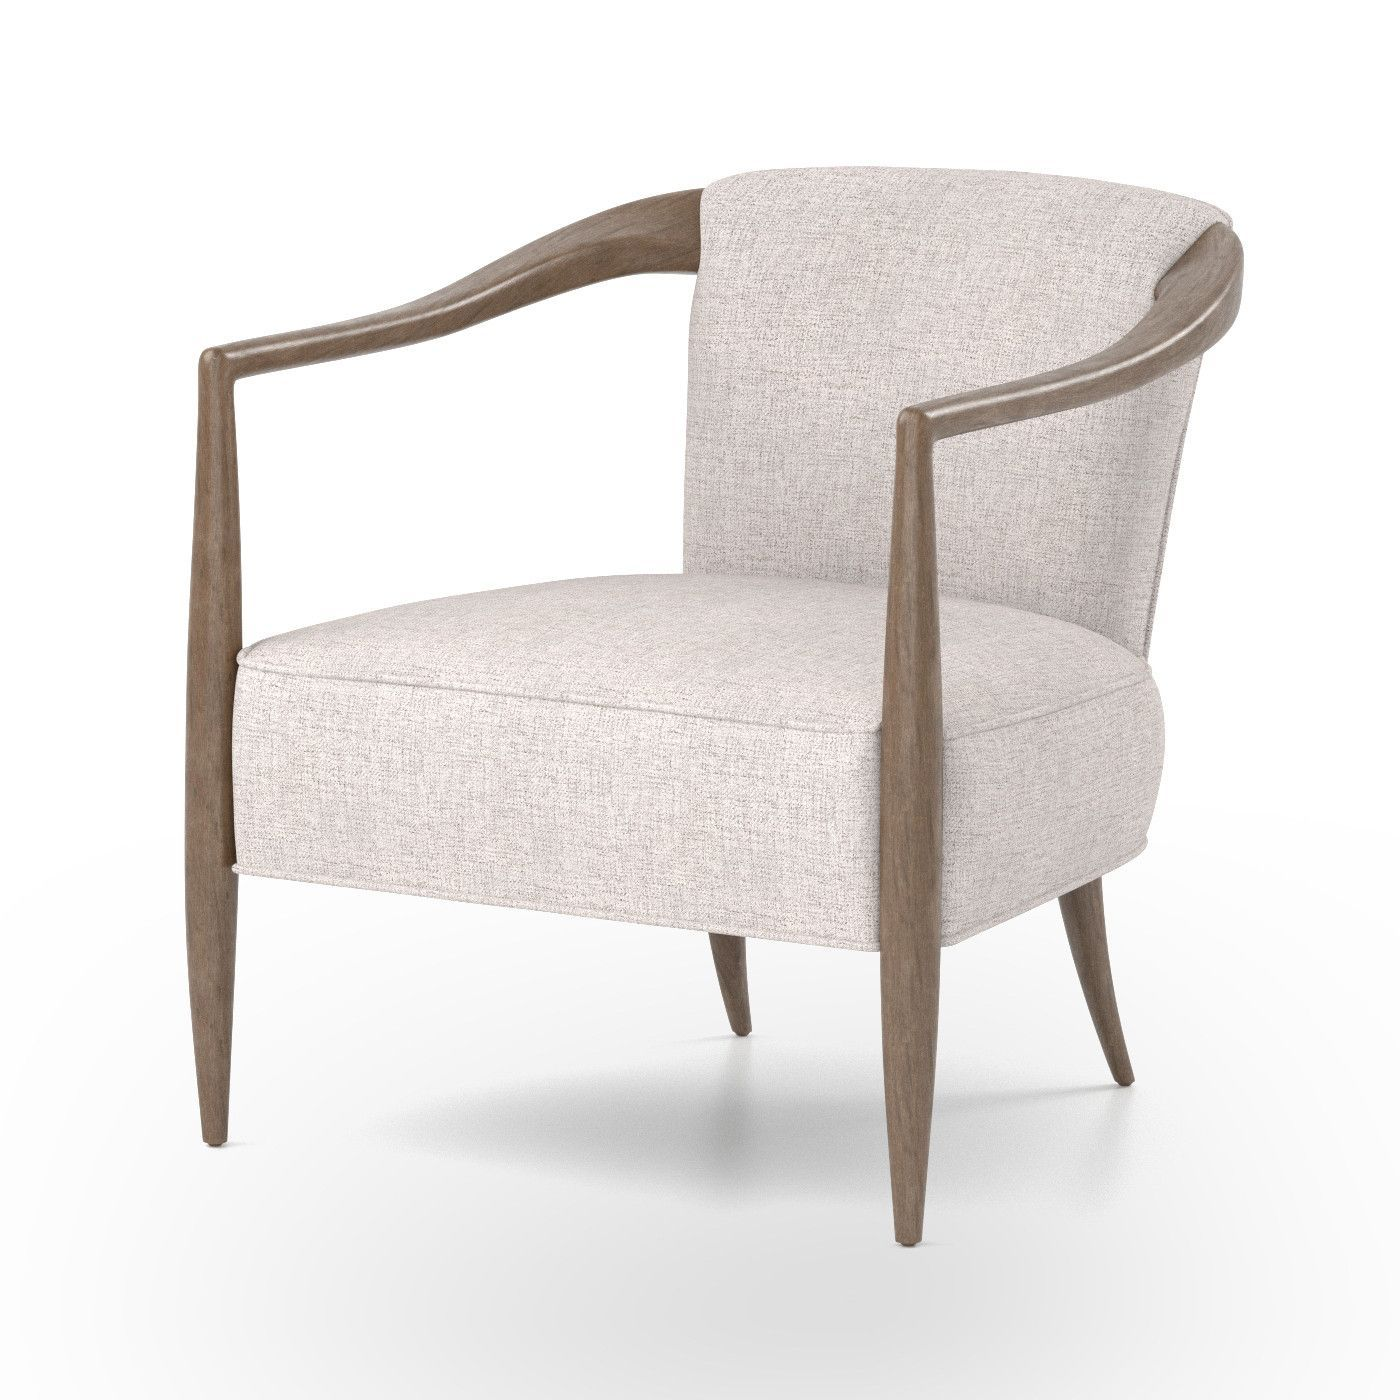 Chair 1408424 From Lillian August   Furnishings Design